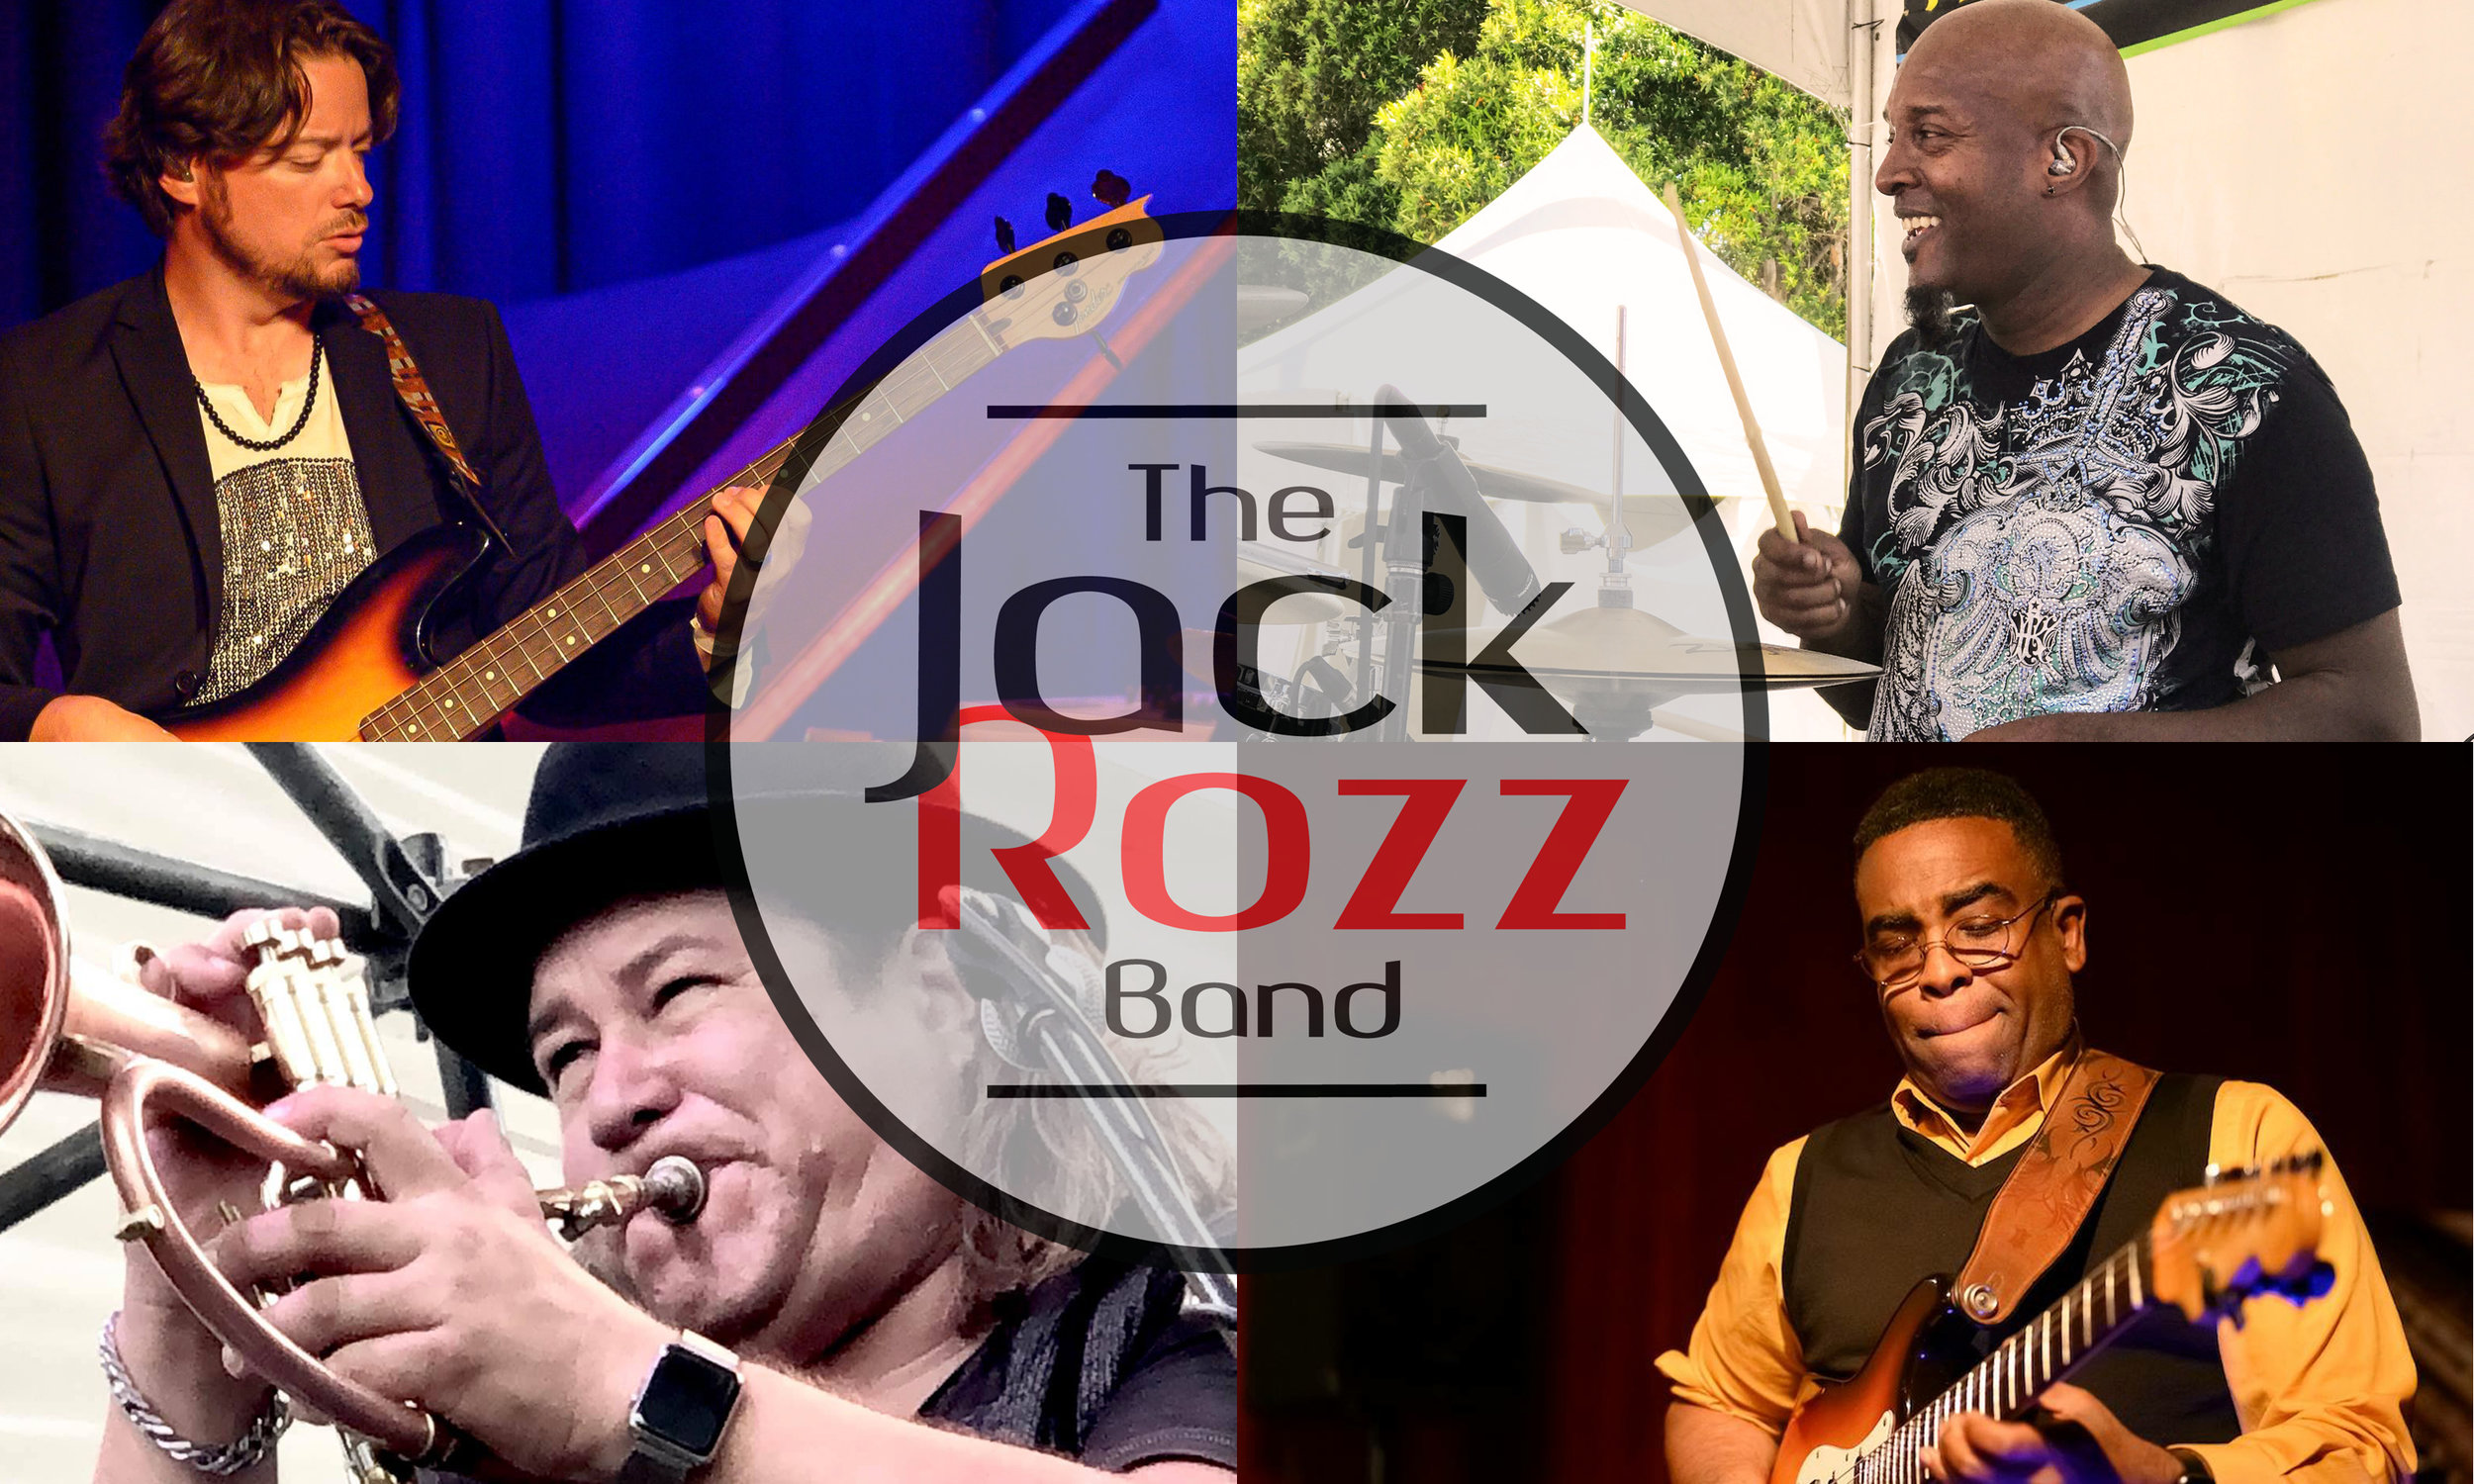 The Jack Rozz Band